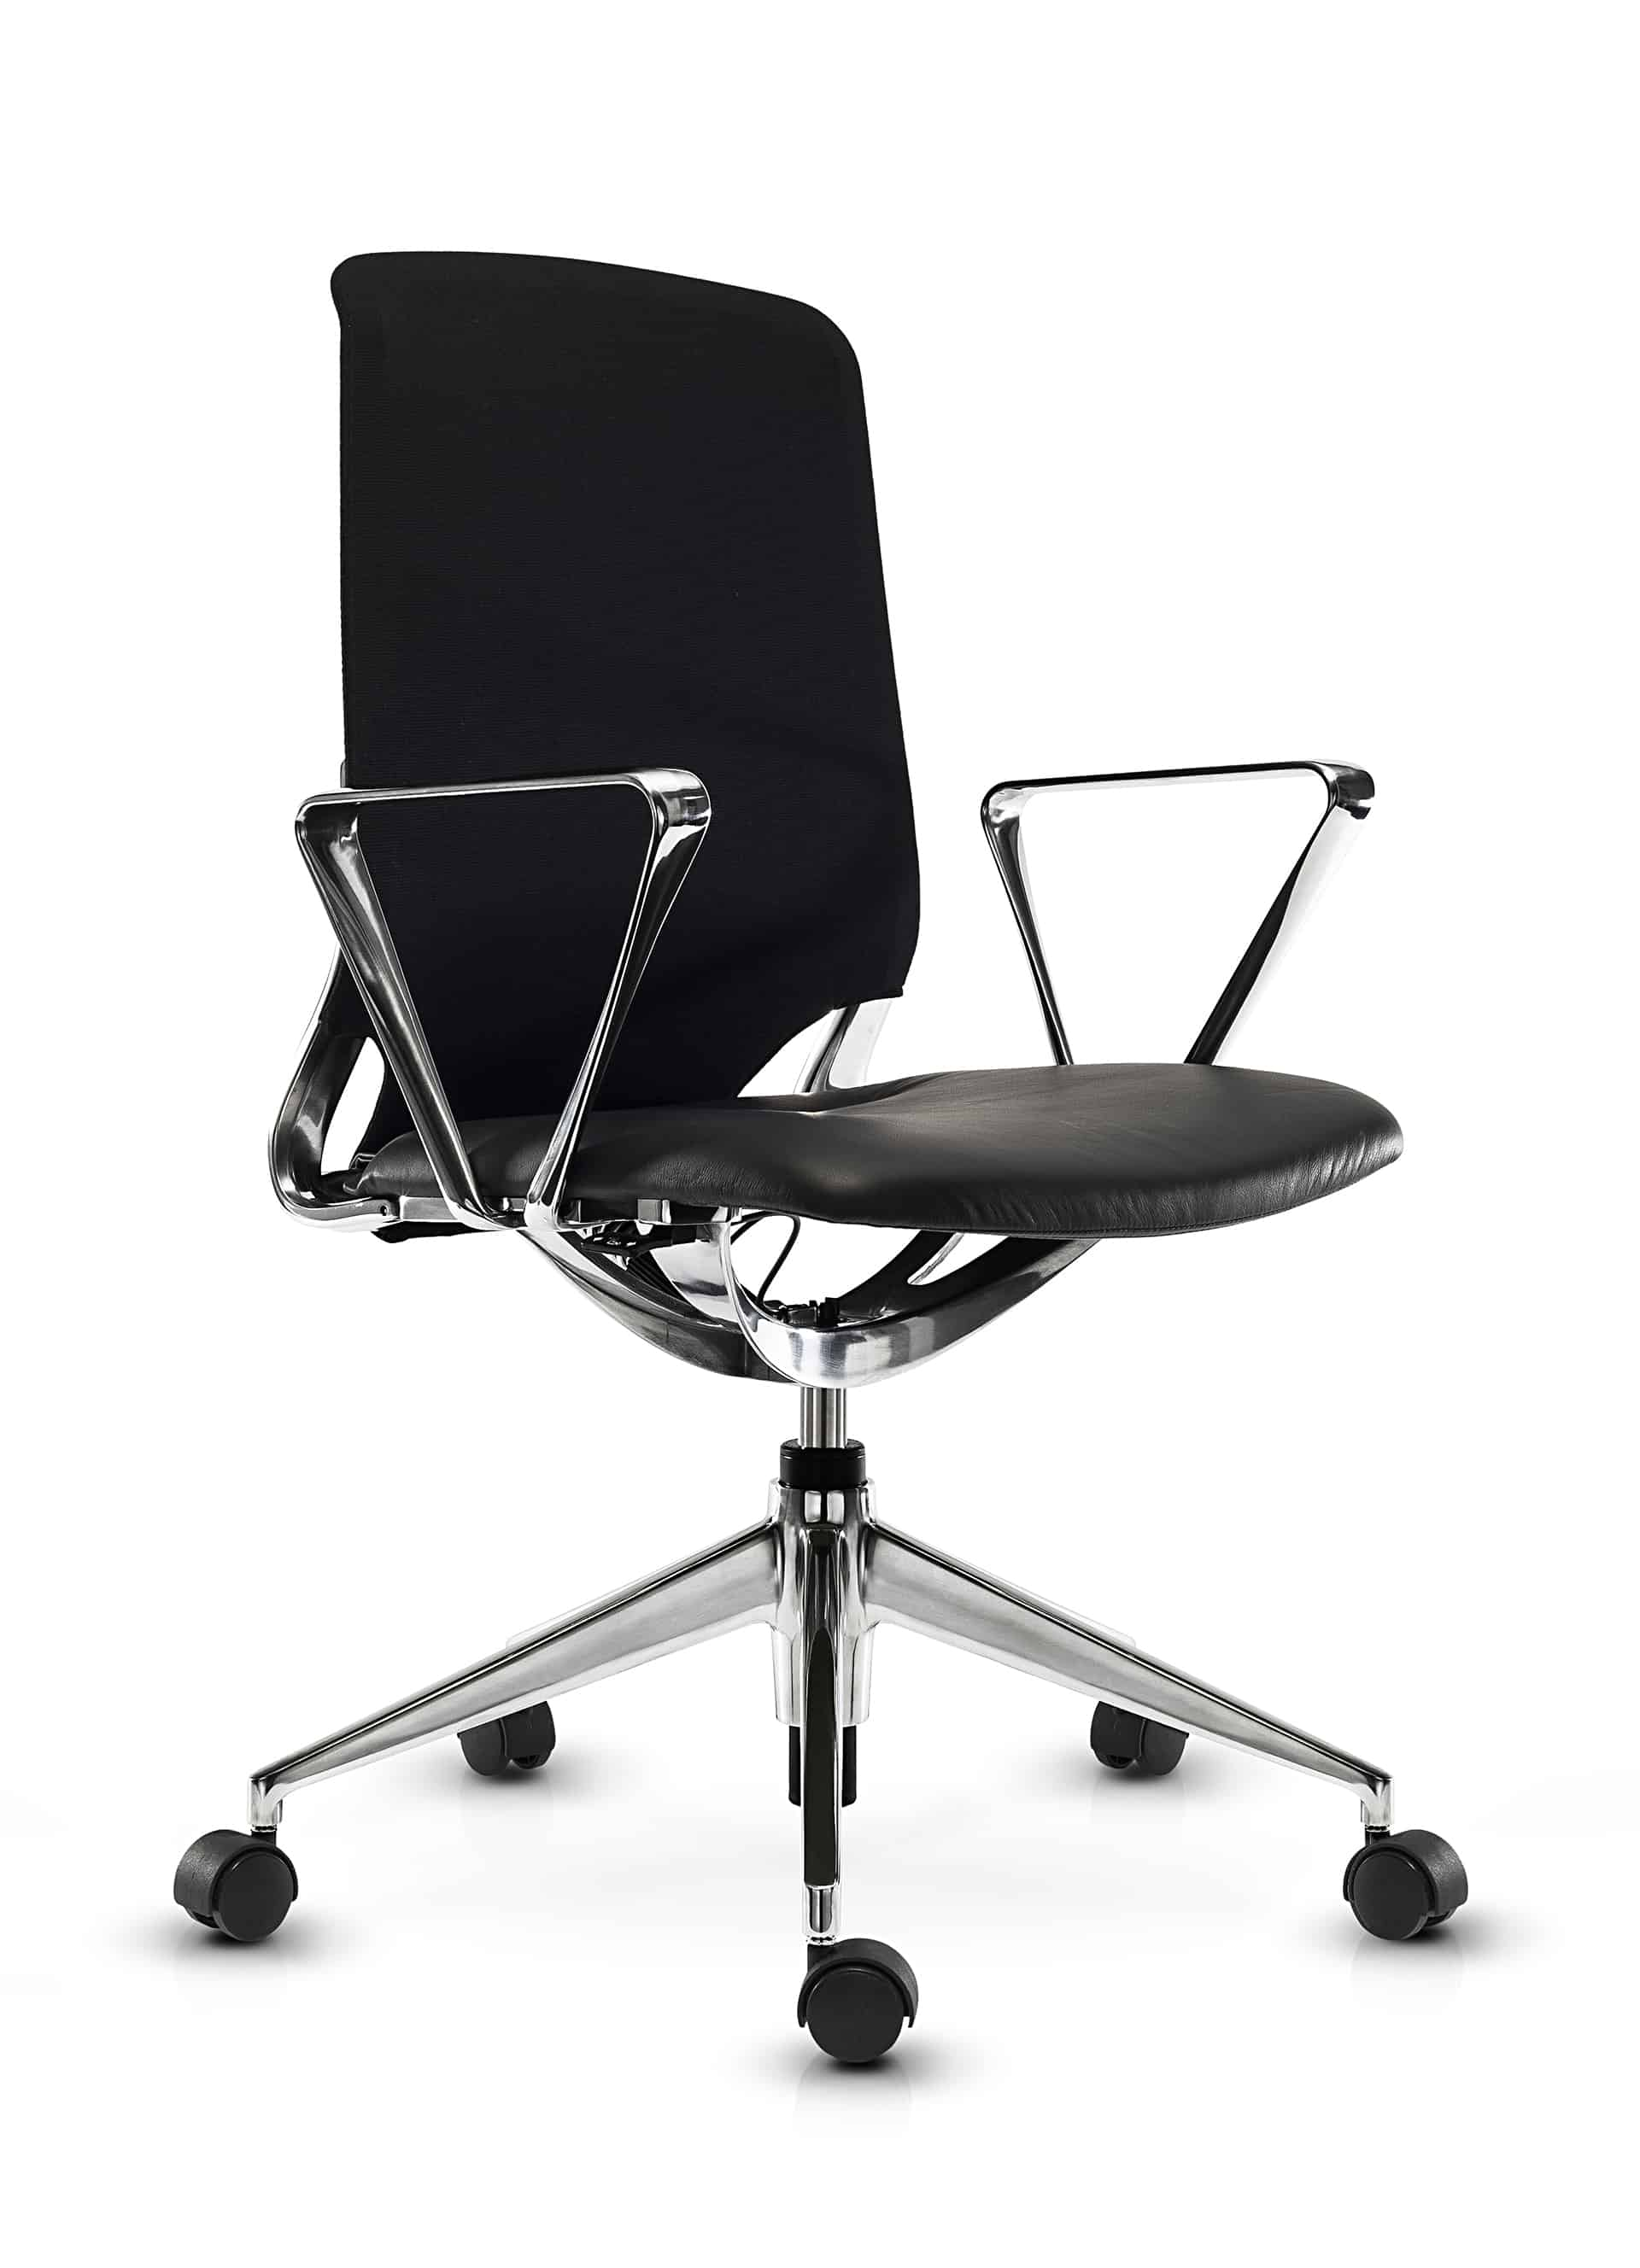 Contessa office chair black with short backrest